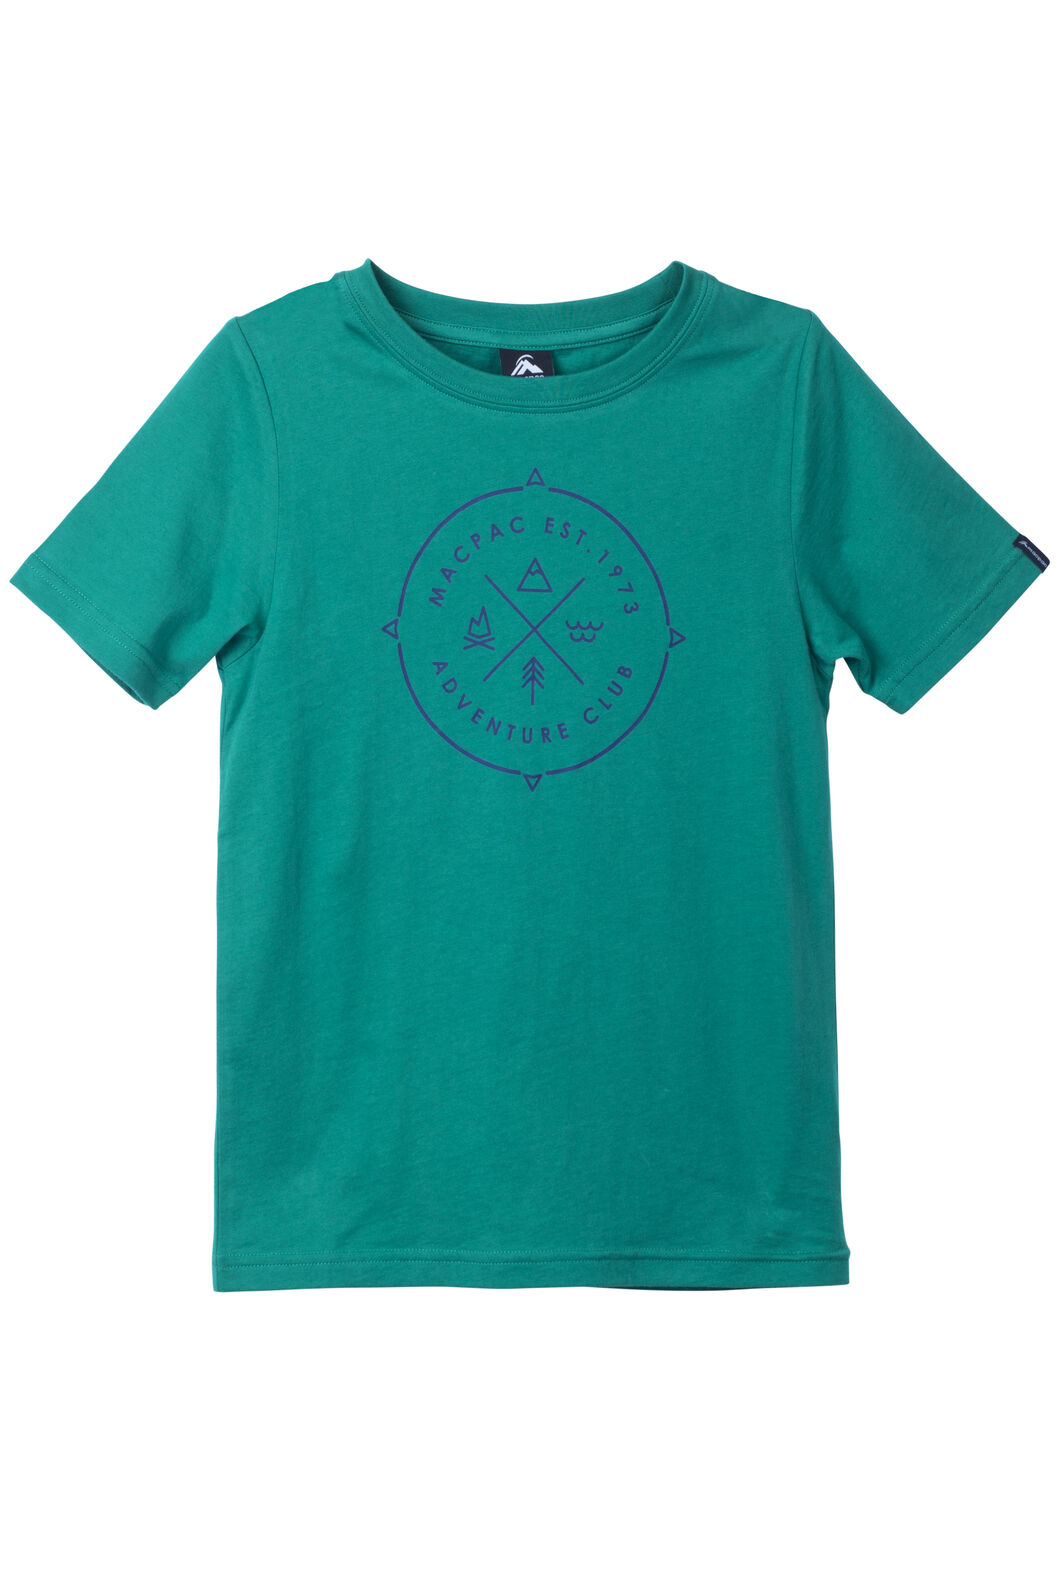 Adventure Organic Cotton Tee - Kids', Ultramarine, hi-res